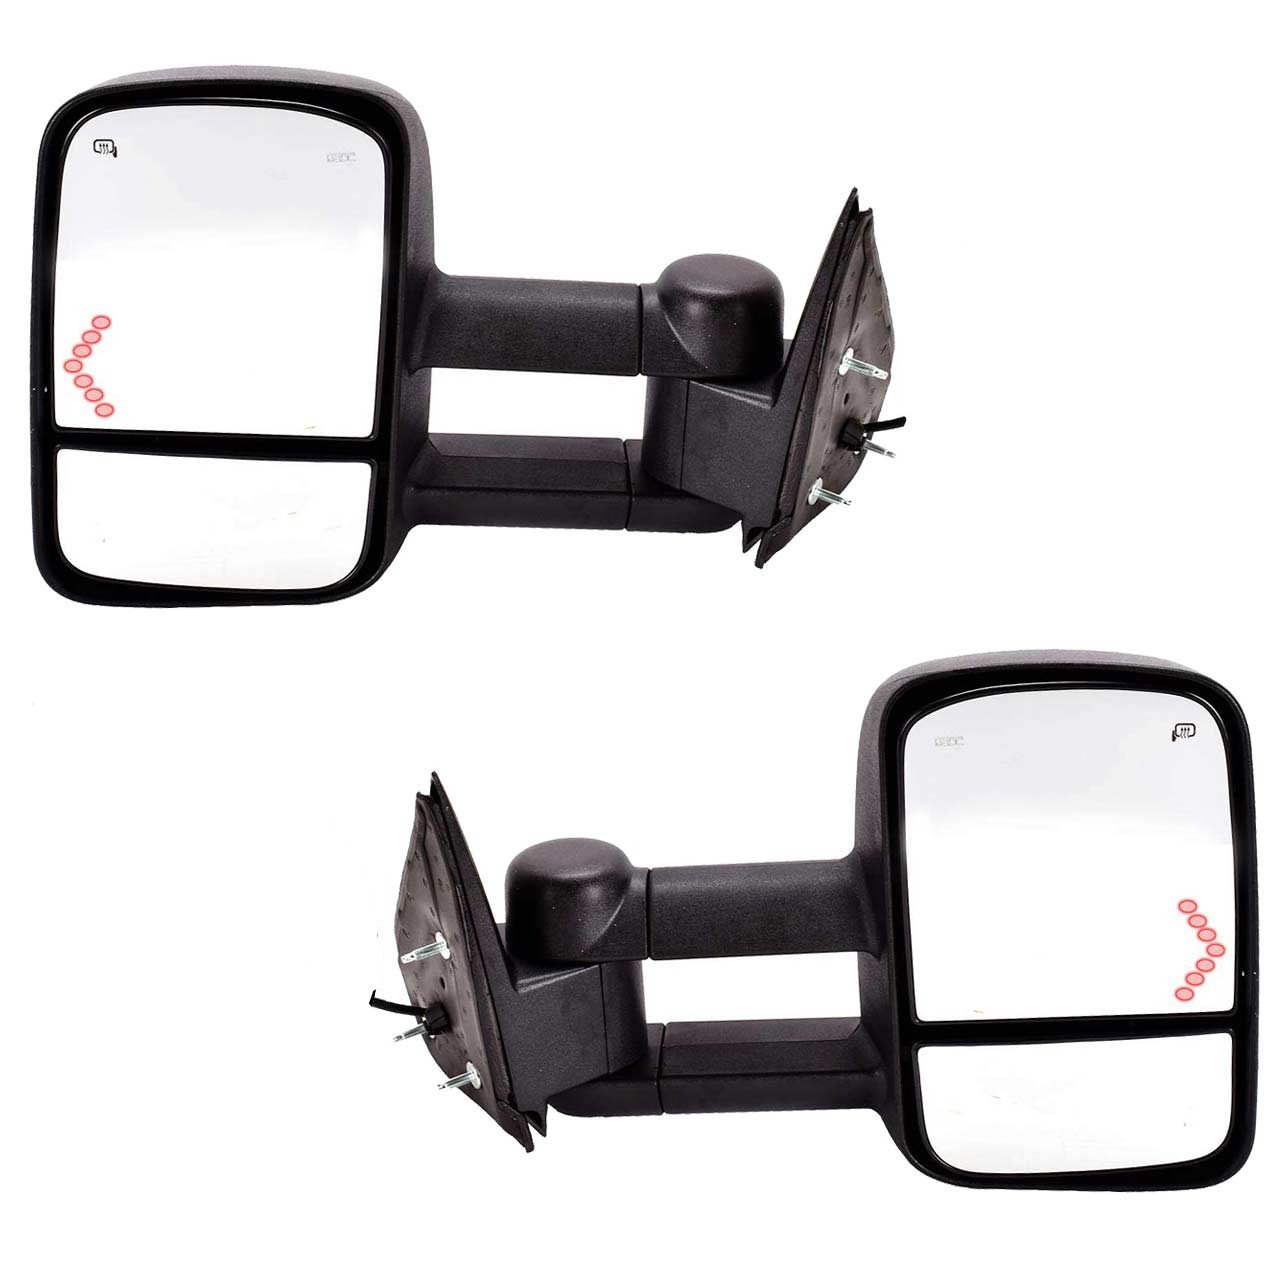 DEDC Chevy Tow Mirrors Side Mirrors Towing Mirrors Power Heated with Arrow Signal Light for 2003-2007 Chevrolet Silverado GMC Sierra 1 Pair XZ_TRUCKMR_CS7253EL